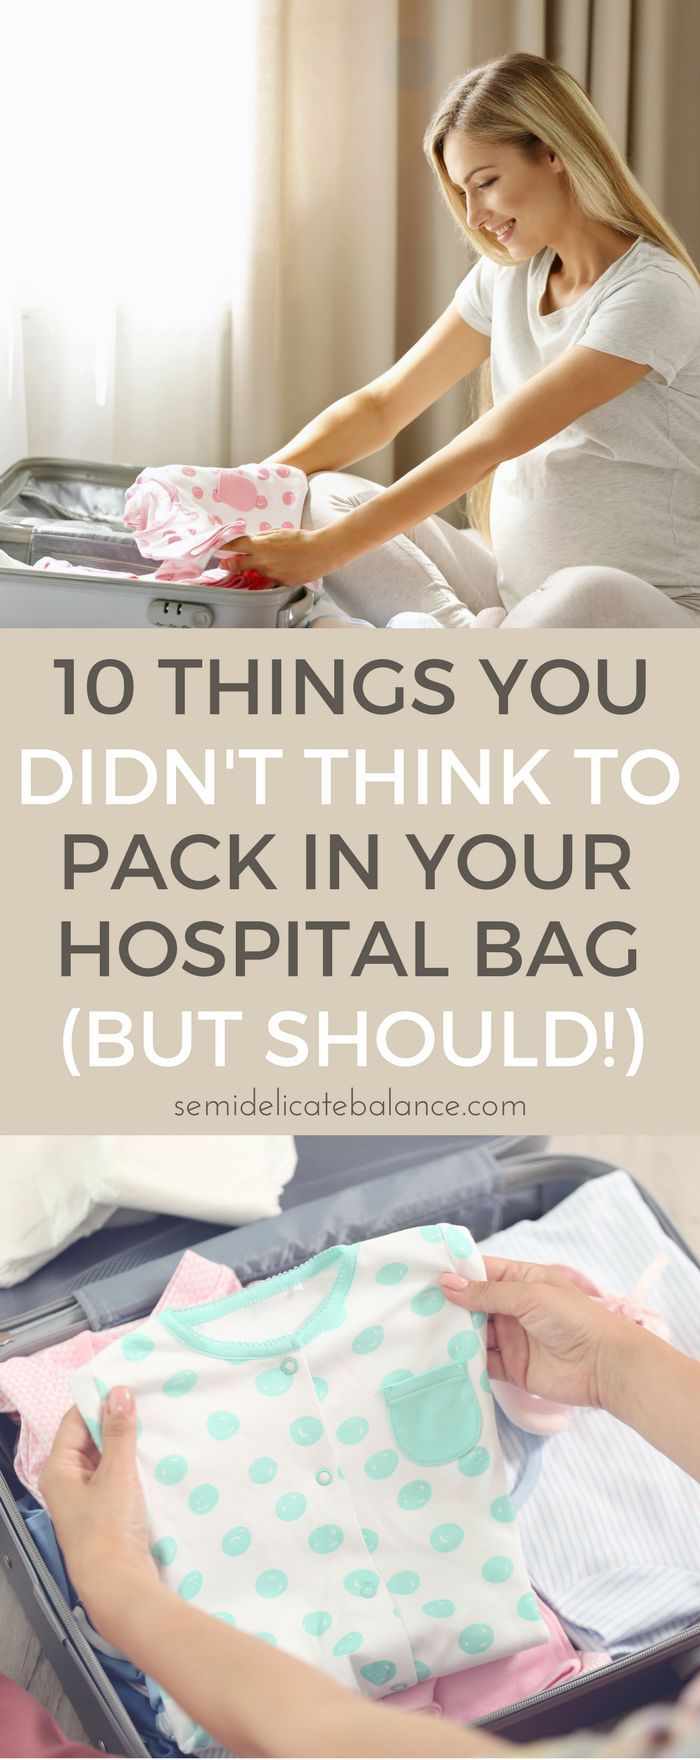 10 Things You Didn't Think to Pack for Your Hospital Bag (But Should!)